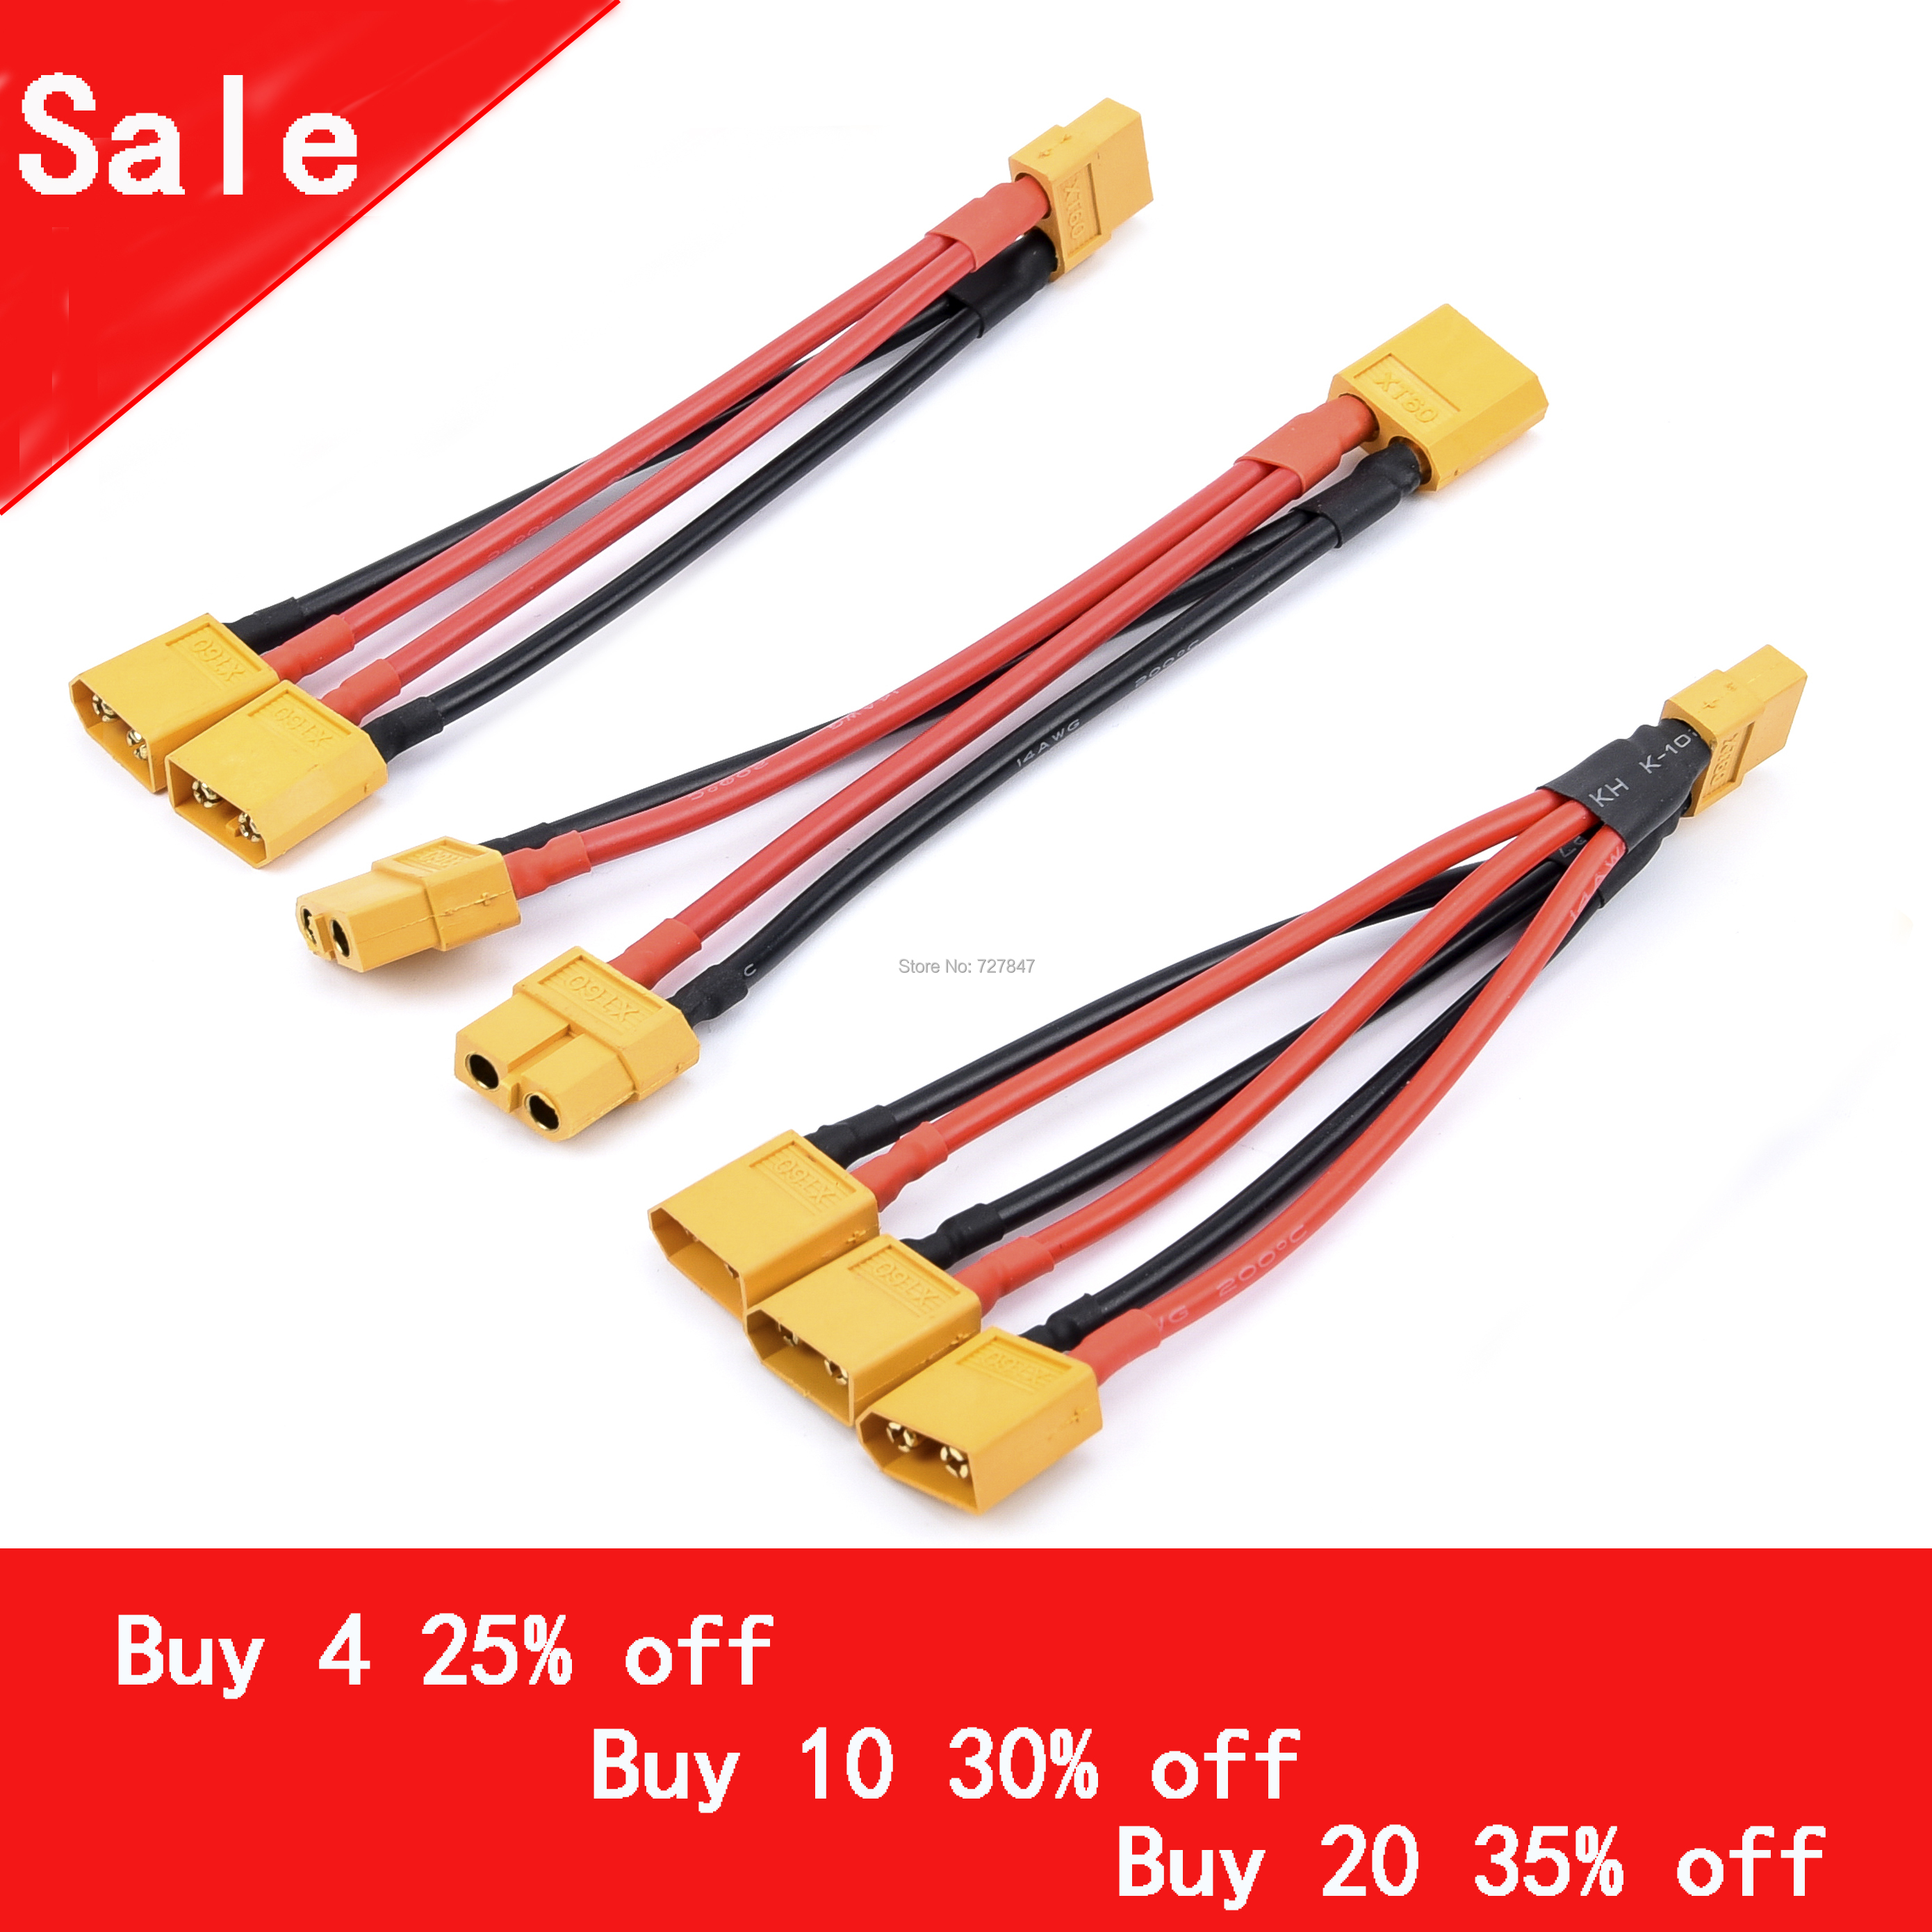 XT60 Parallel Battery Connector Male/Female Cable Dual Extension Y Splitter/ 3-Way 14AWG Silicone Wire For RC Battery Motor